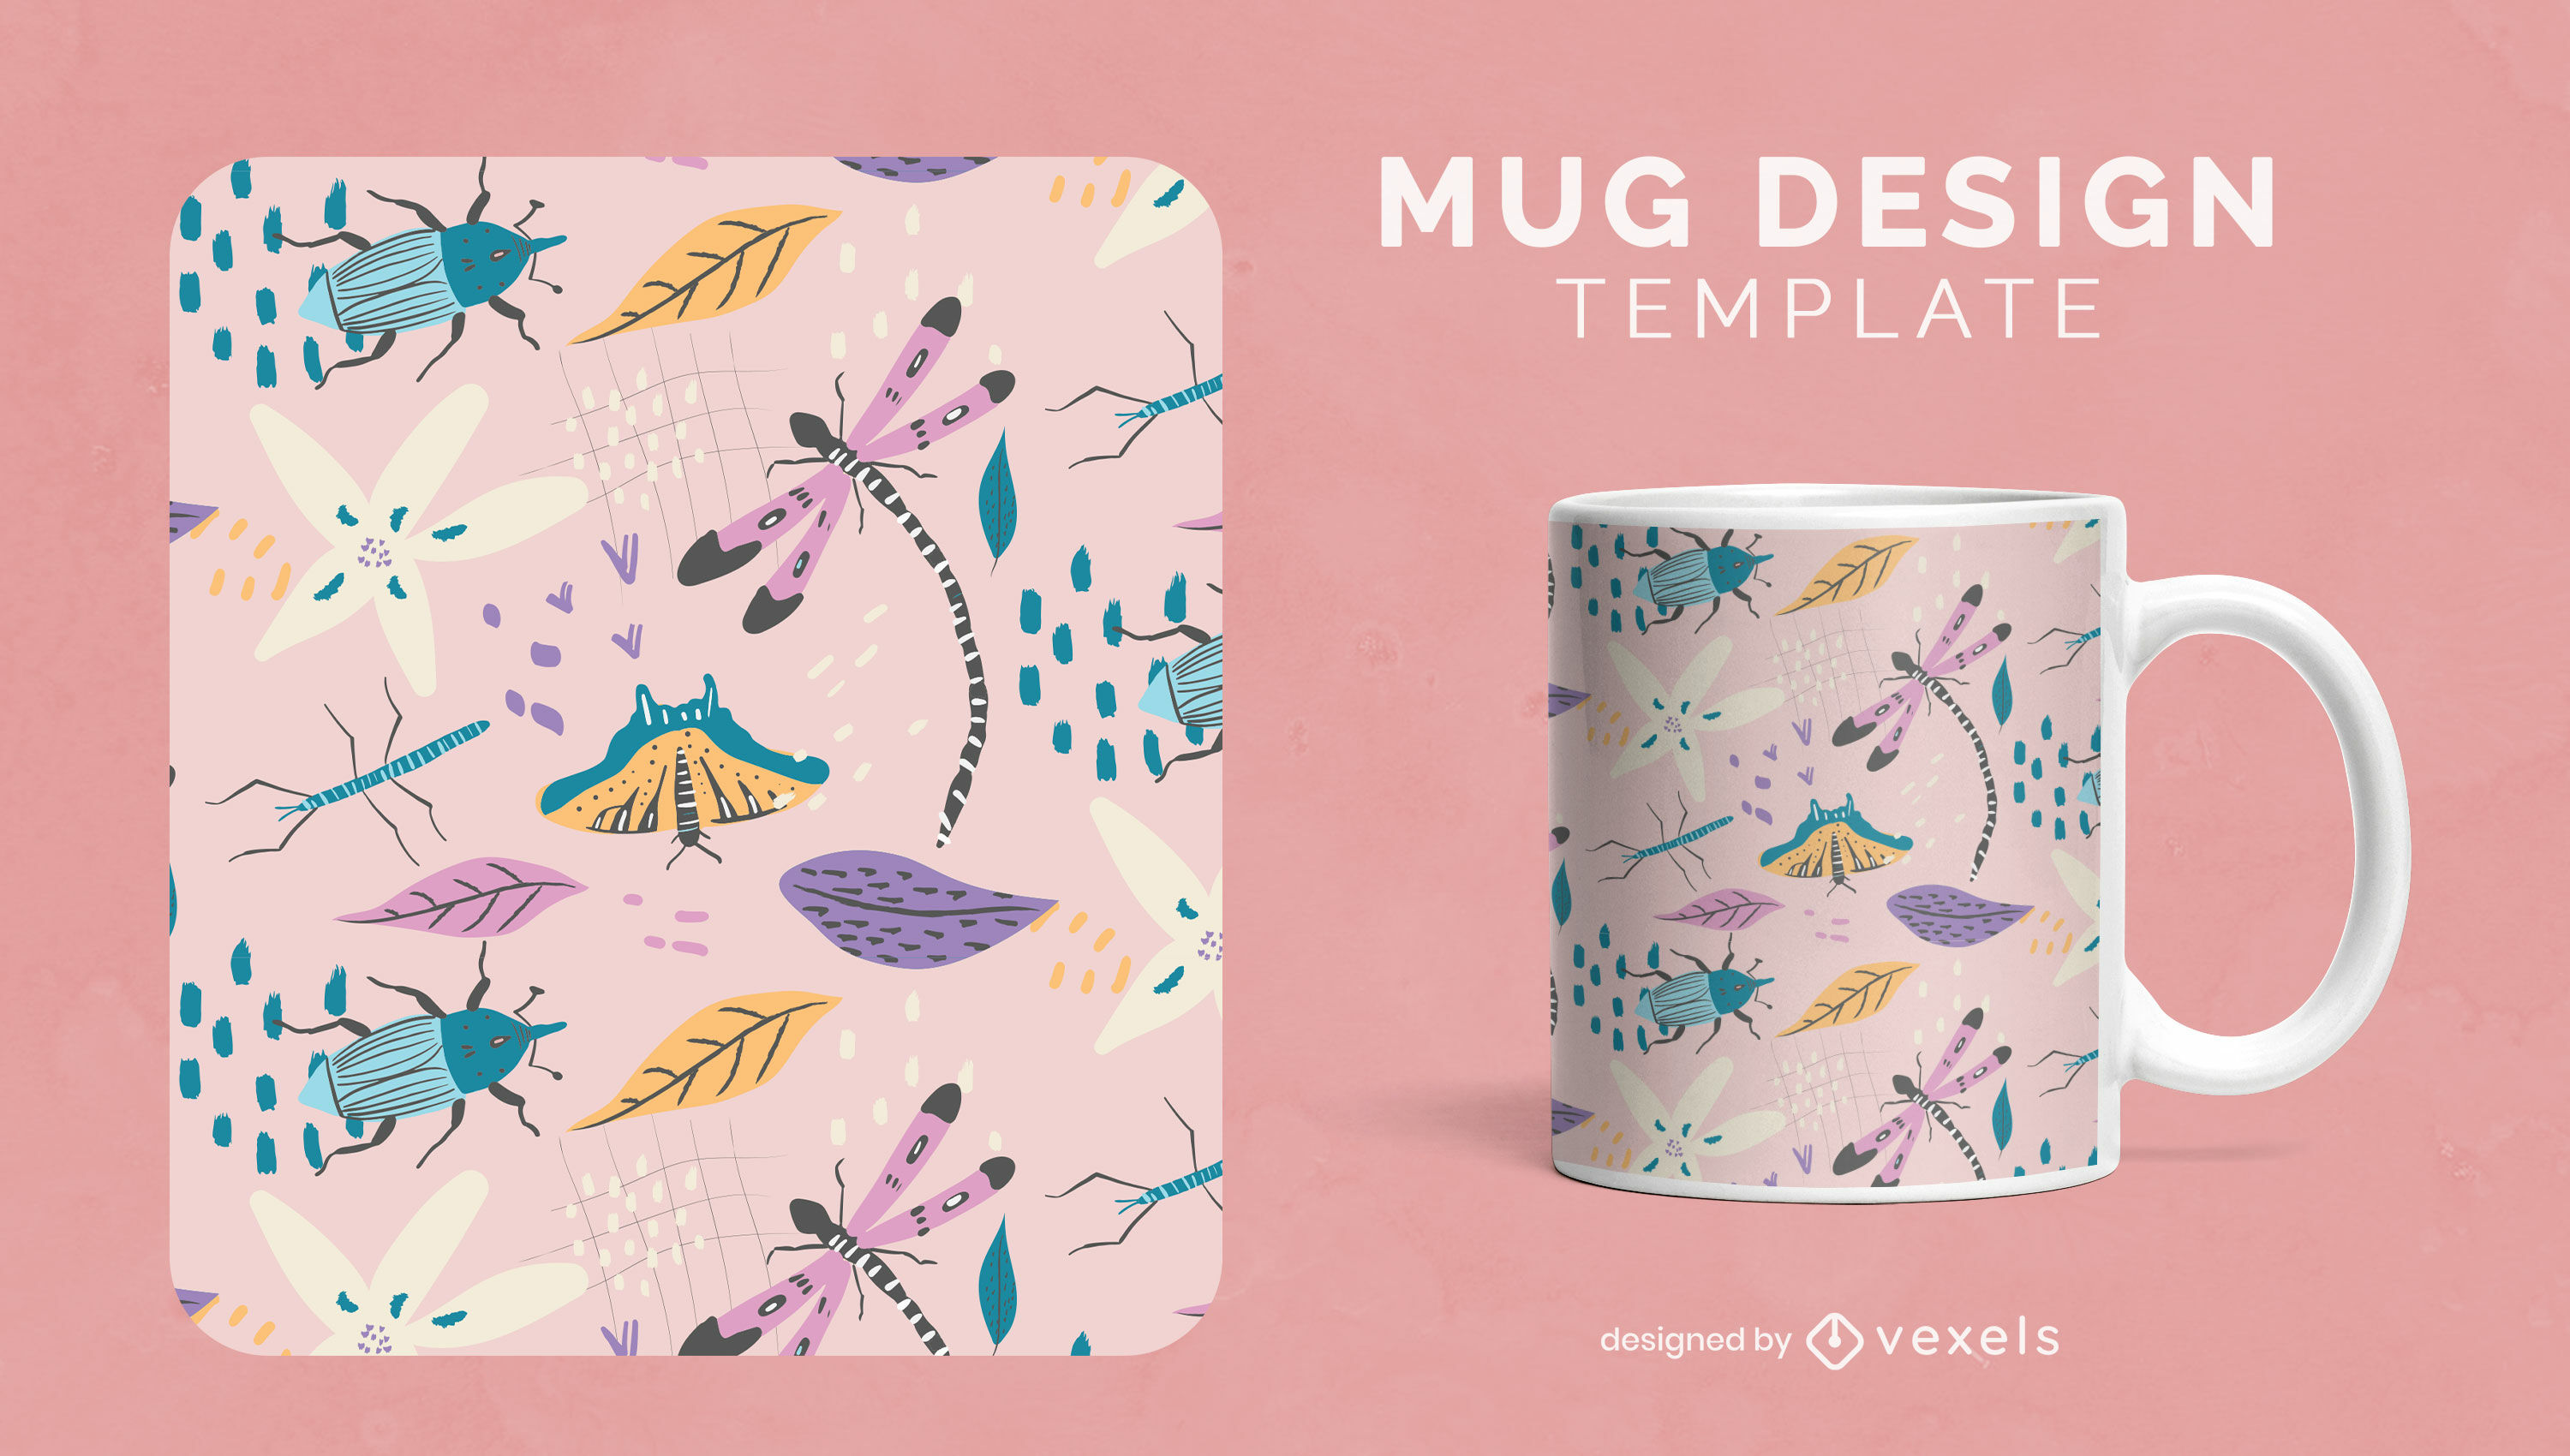 Insects in nature floral mug template